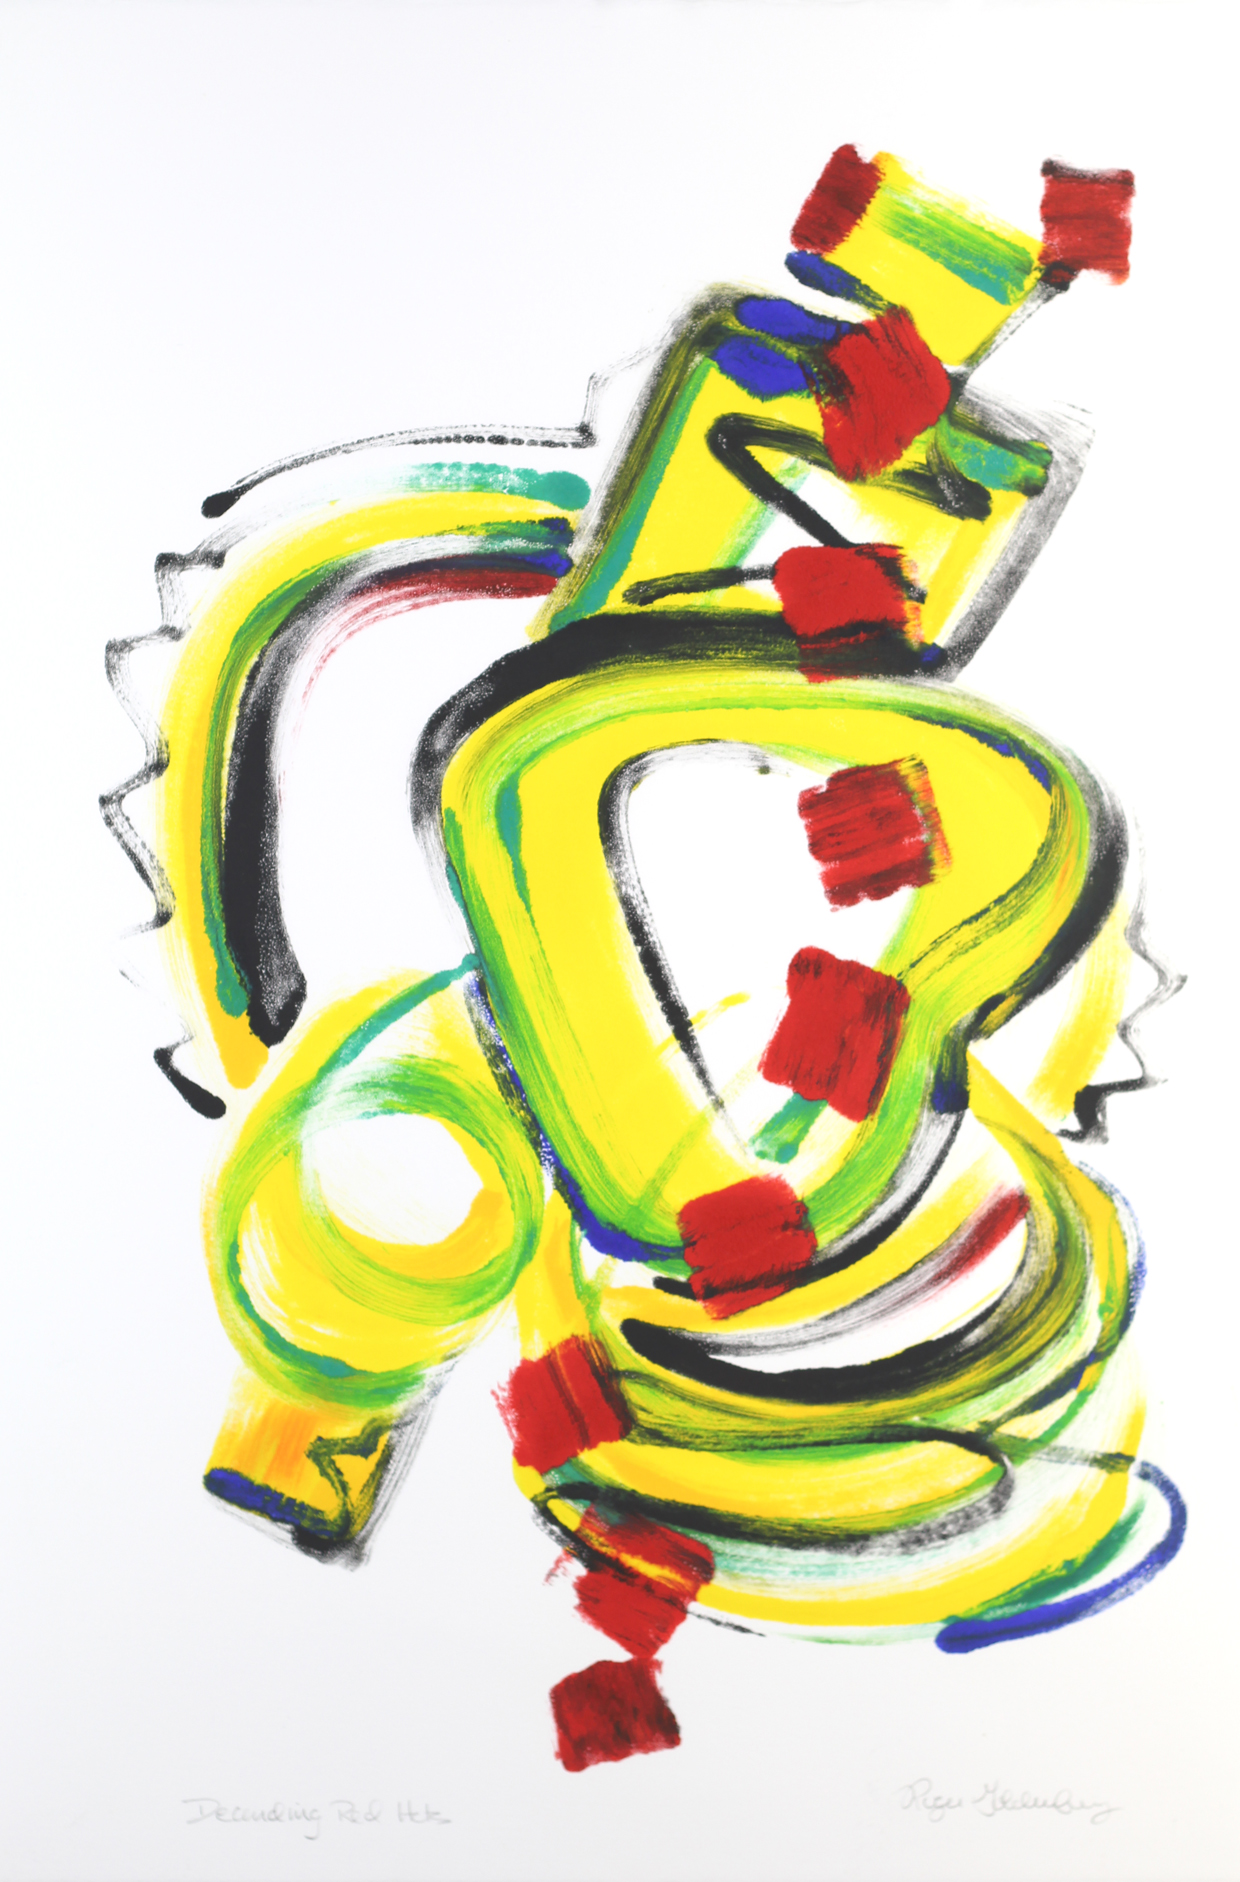 Roger Goldenberg's Visual Jazz Monotype Gallery C has prints pulled from shaped plates. Their style riffs on Goldenberg's shaped visual jazz paintings  Descending Red Hots